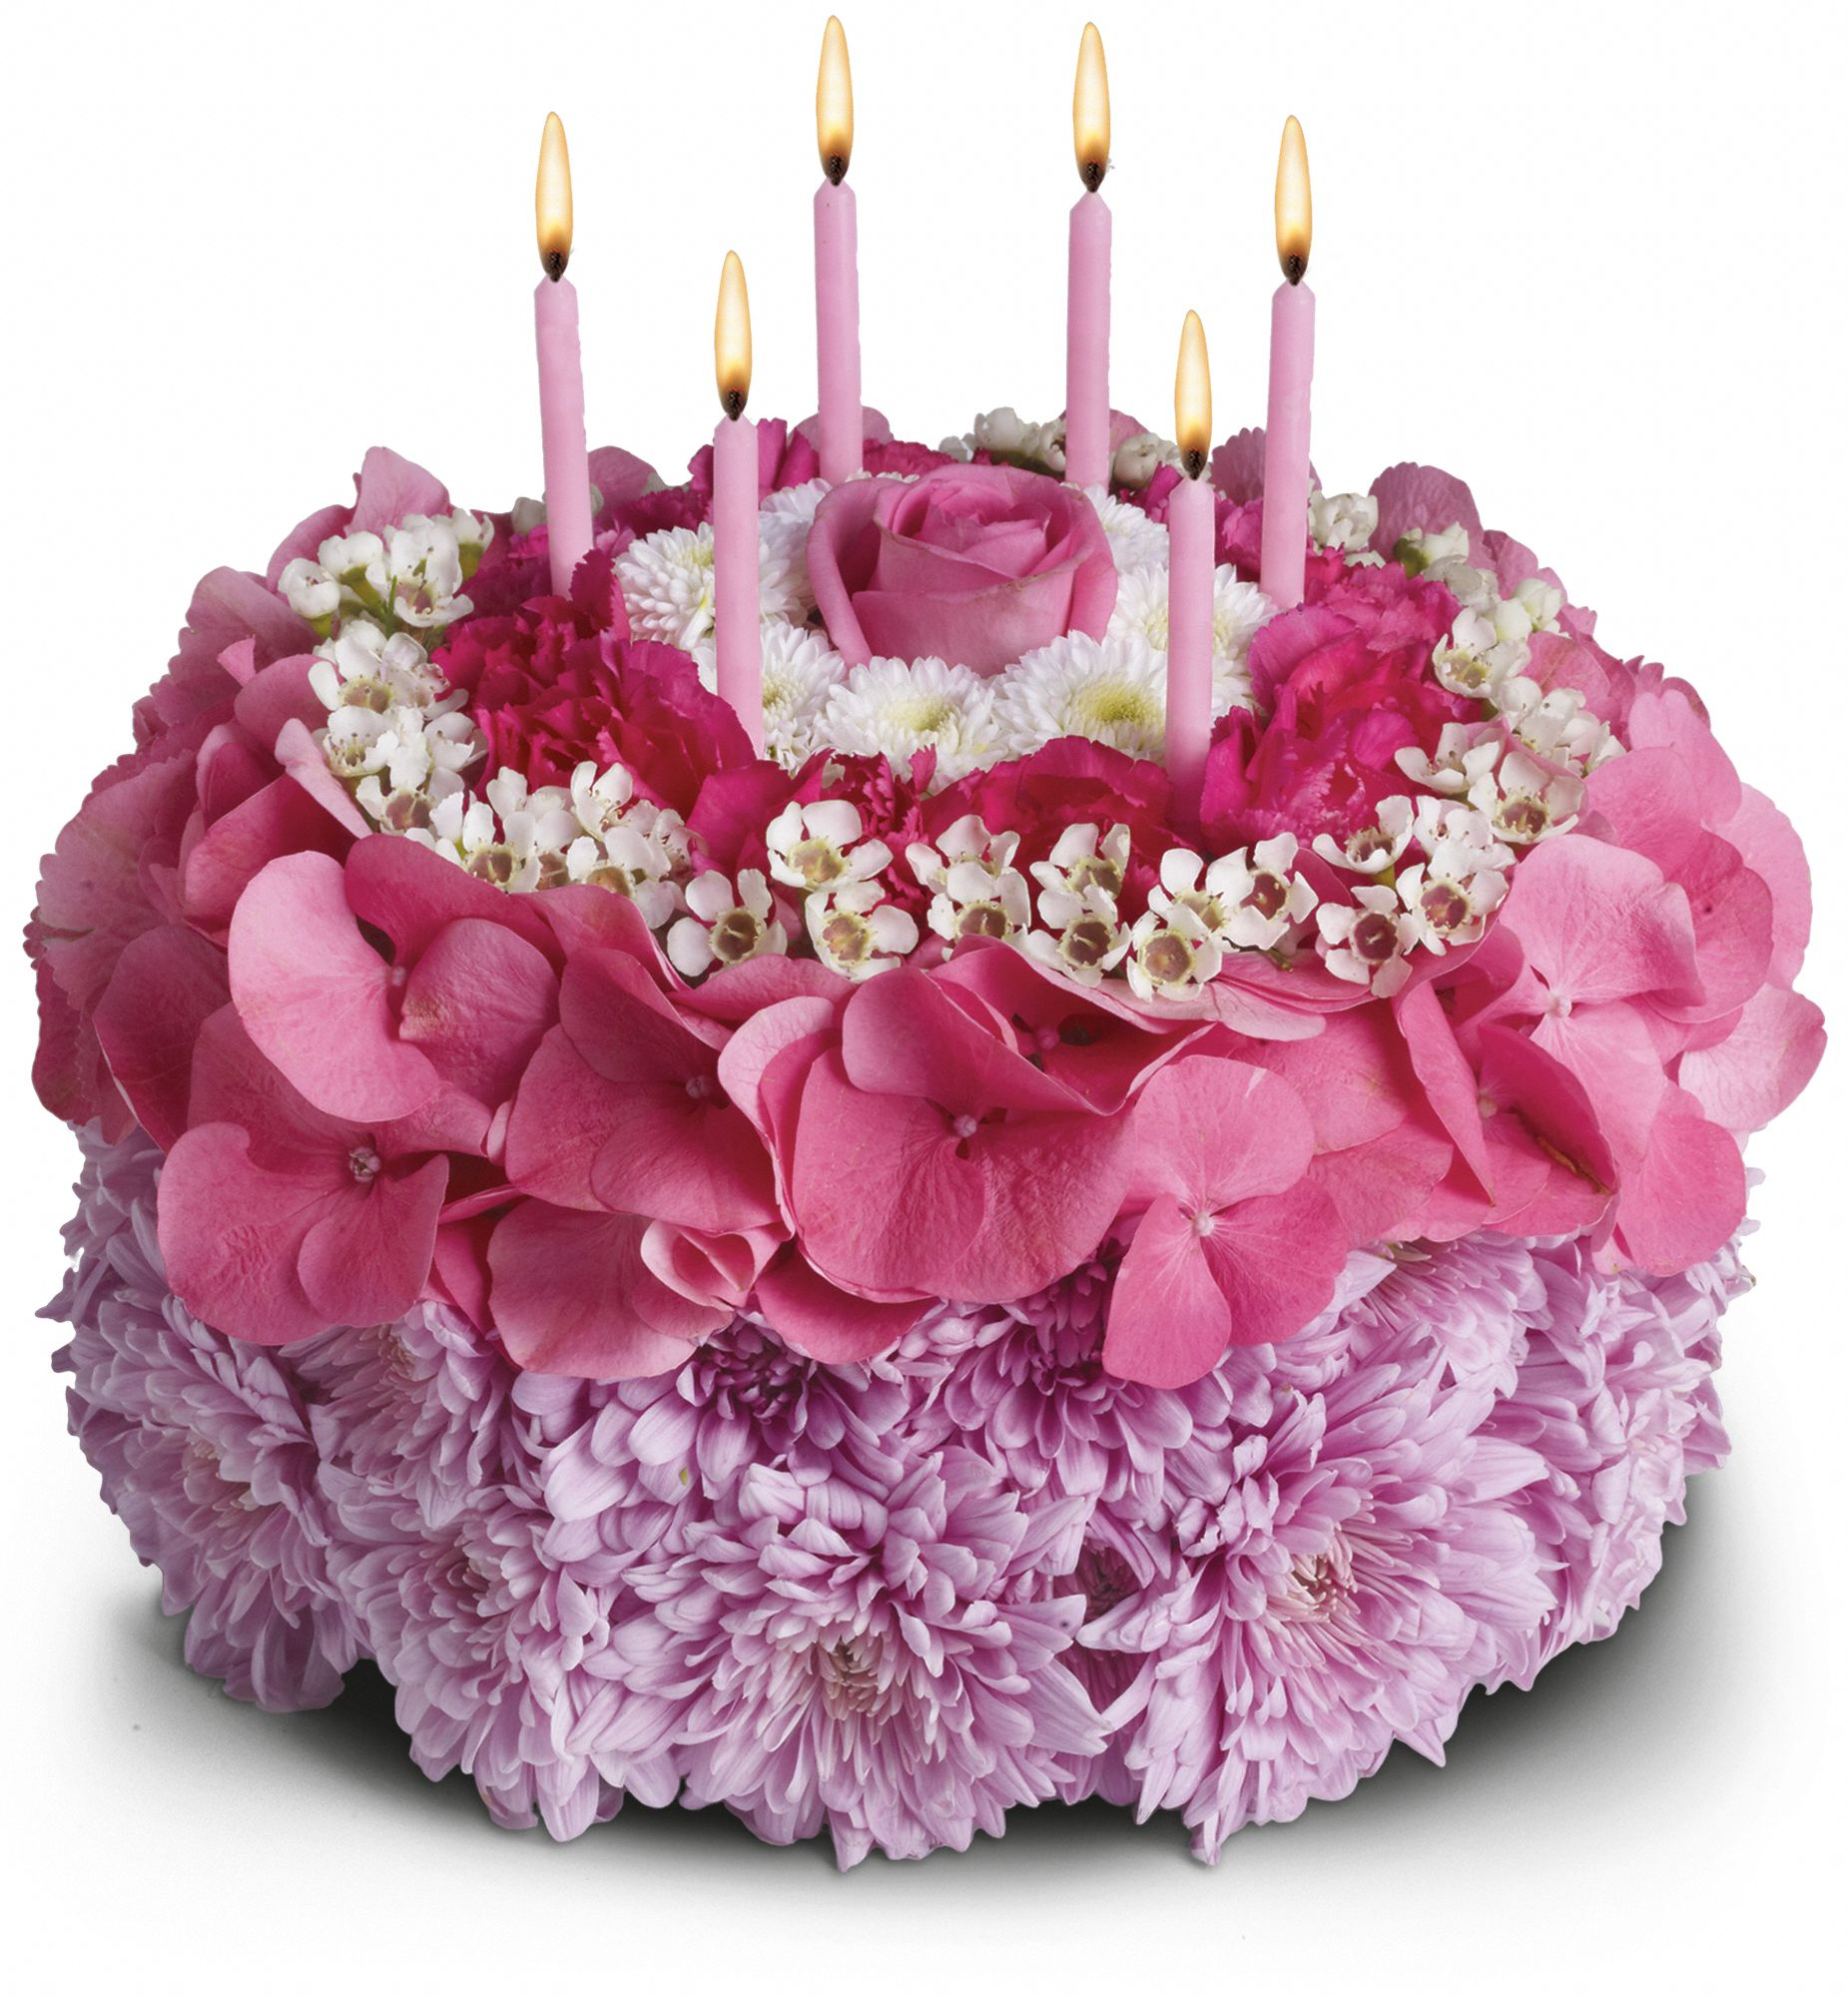 Your Special Day bouquet - flowers in shape of birthday cake